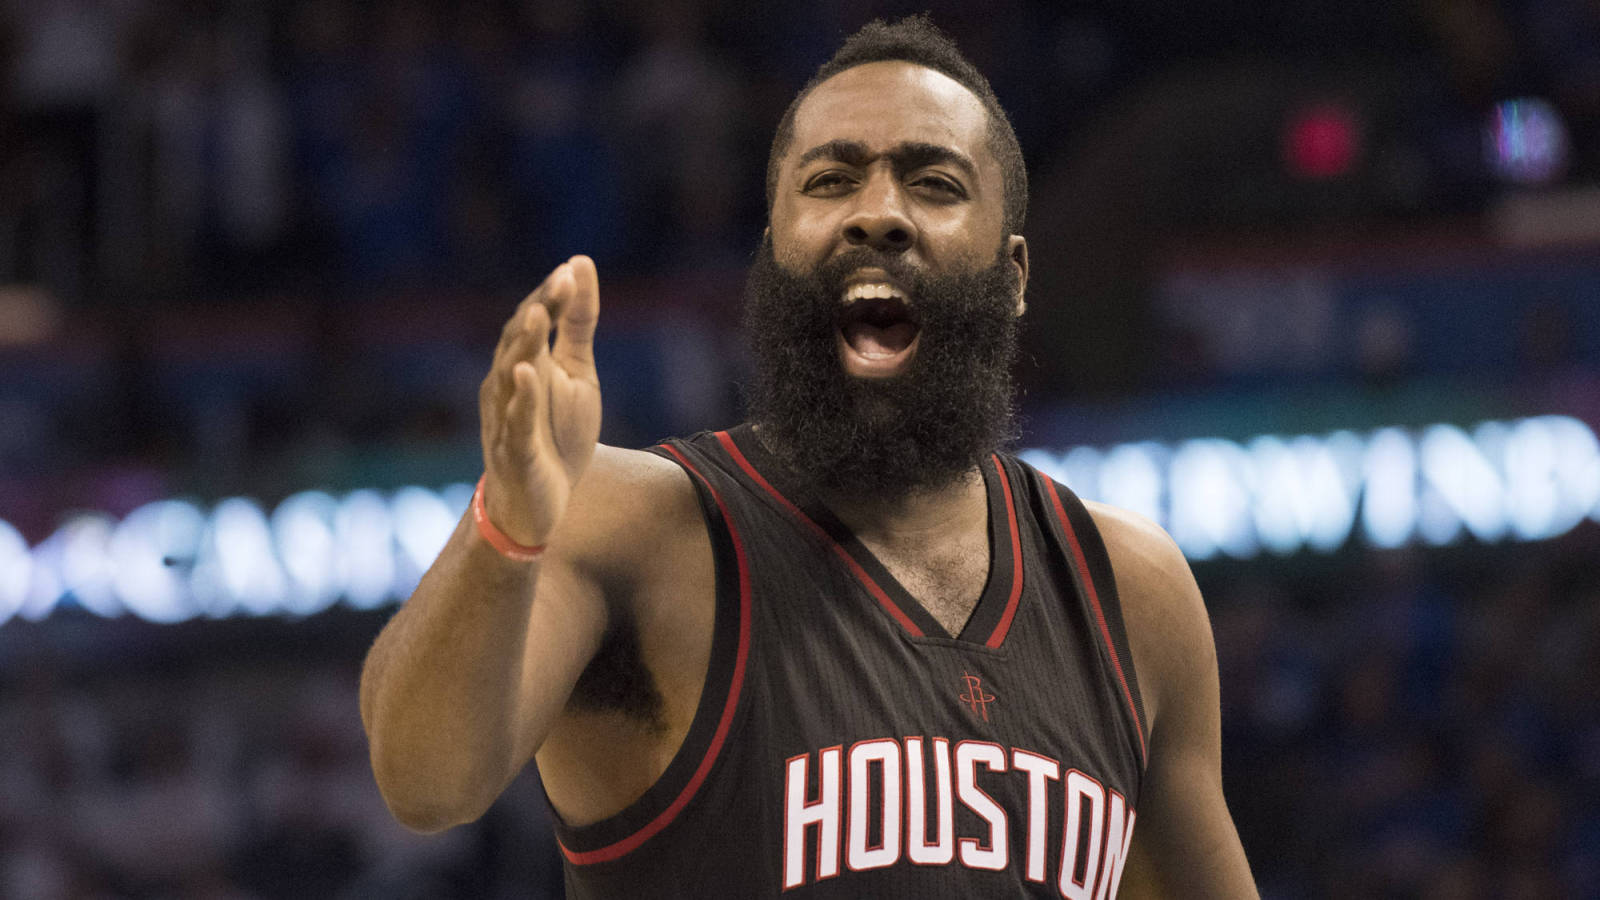 La clippers the impact of blake griffins surgery on the team foxsports com - James Harden Of The Houston Rockets Argues A Penalty Call During The Second Half Of Game Three Against The Oklahoma City Thunder In The 2017 Nba Playoffs